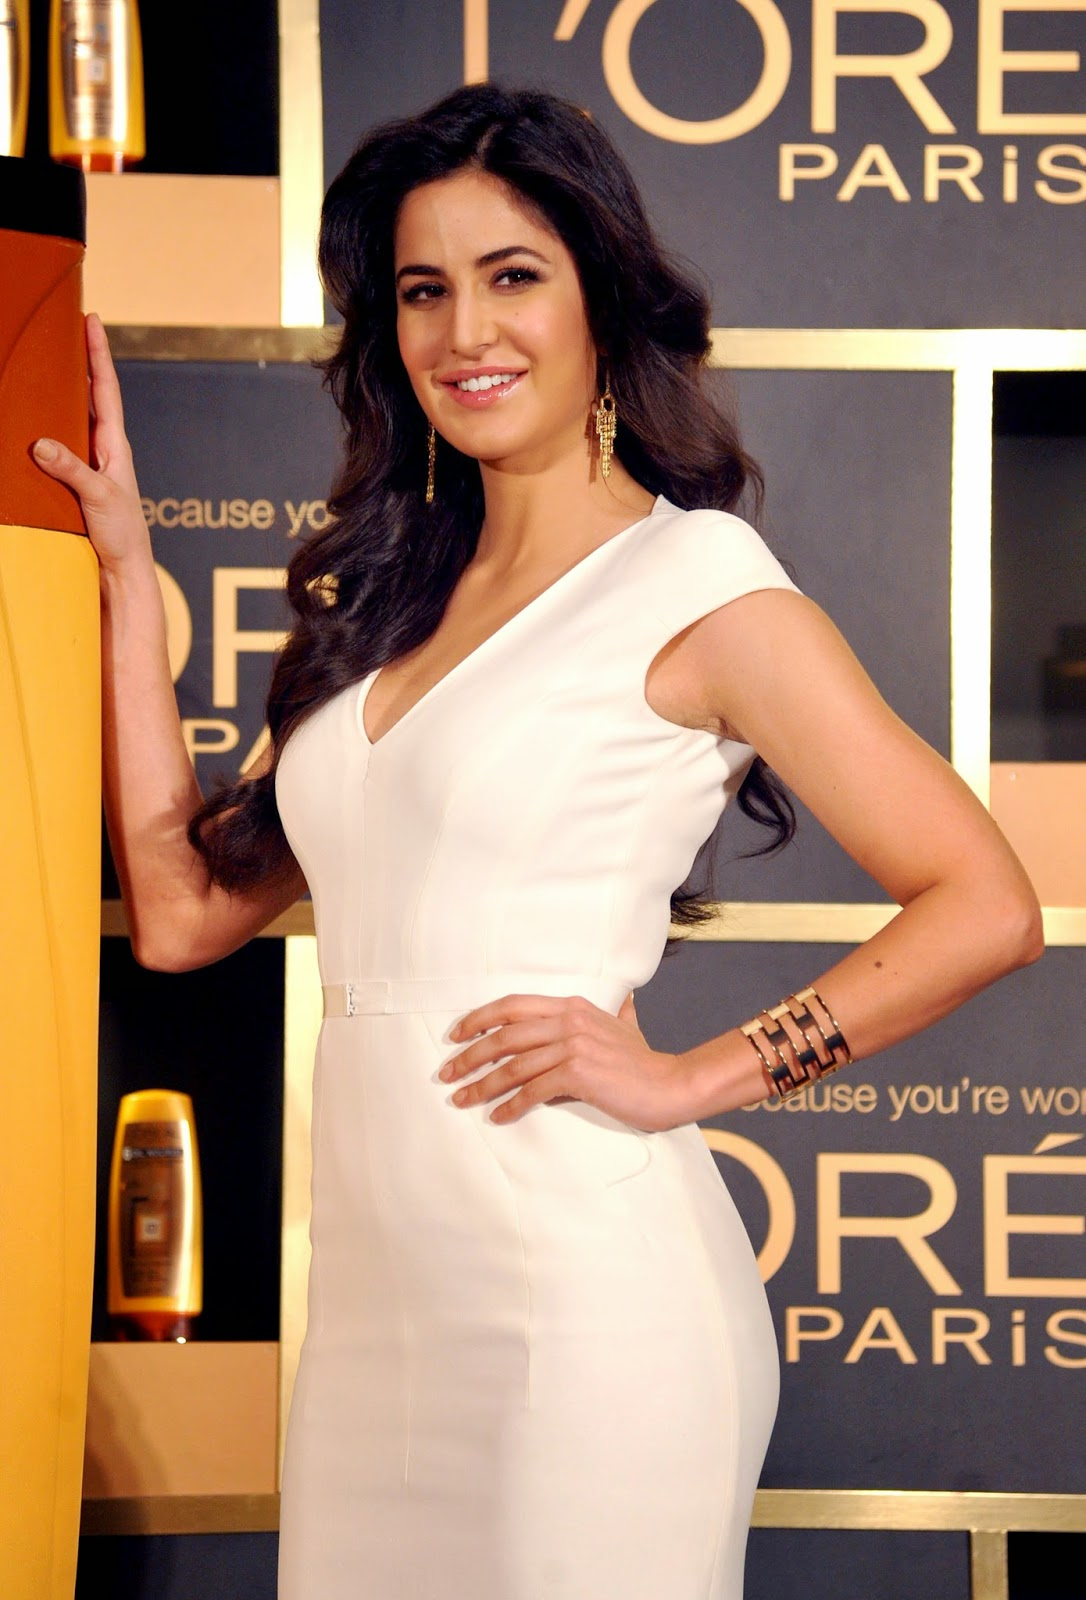 Bollywood, Bollywood actress, Entertainment, Katrina and Ranbir Love Affair, Katrina Kaif, Love Affair, Ranbir Kapoor, Ranbir Kapoor and Katrina Kaif, Rishi Kapoor, Showbiz, Actress,